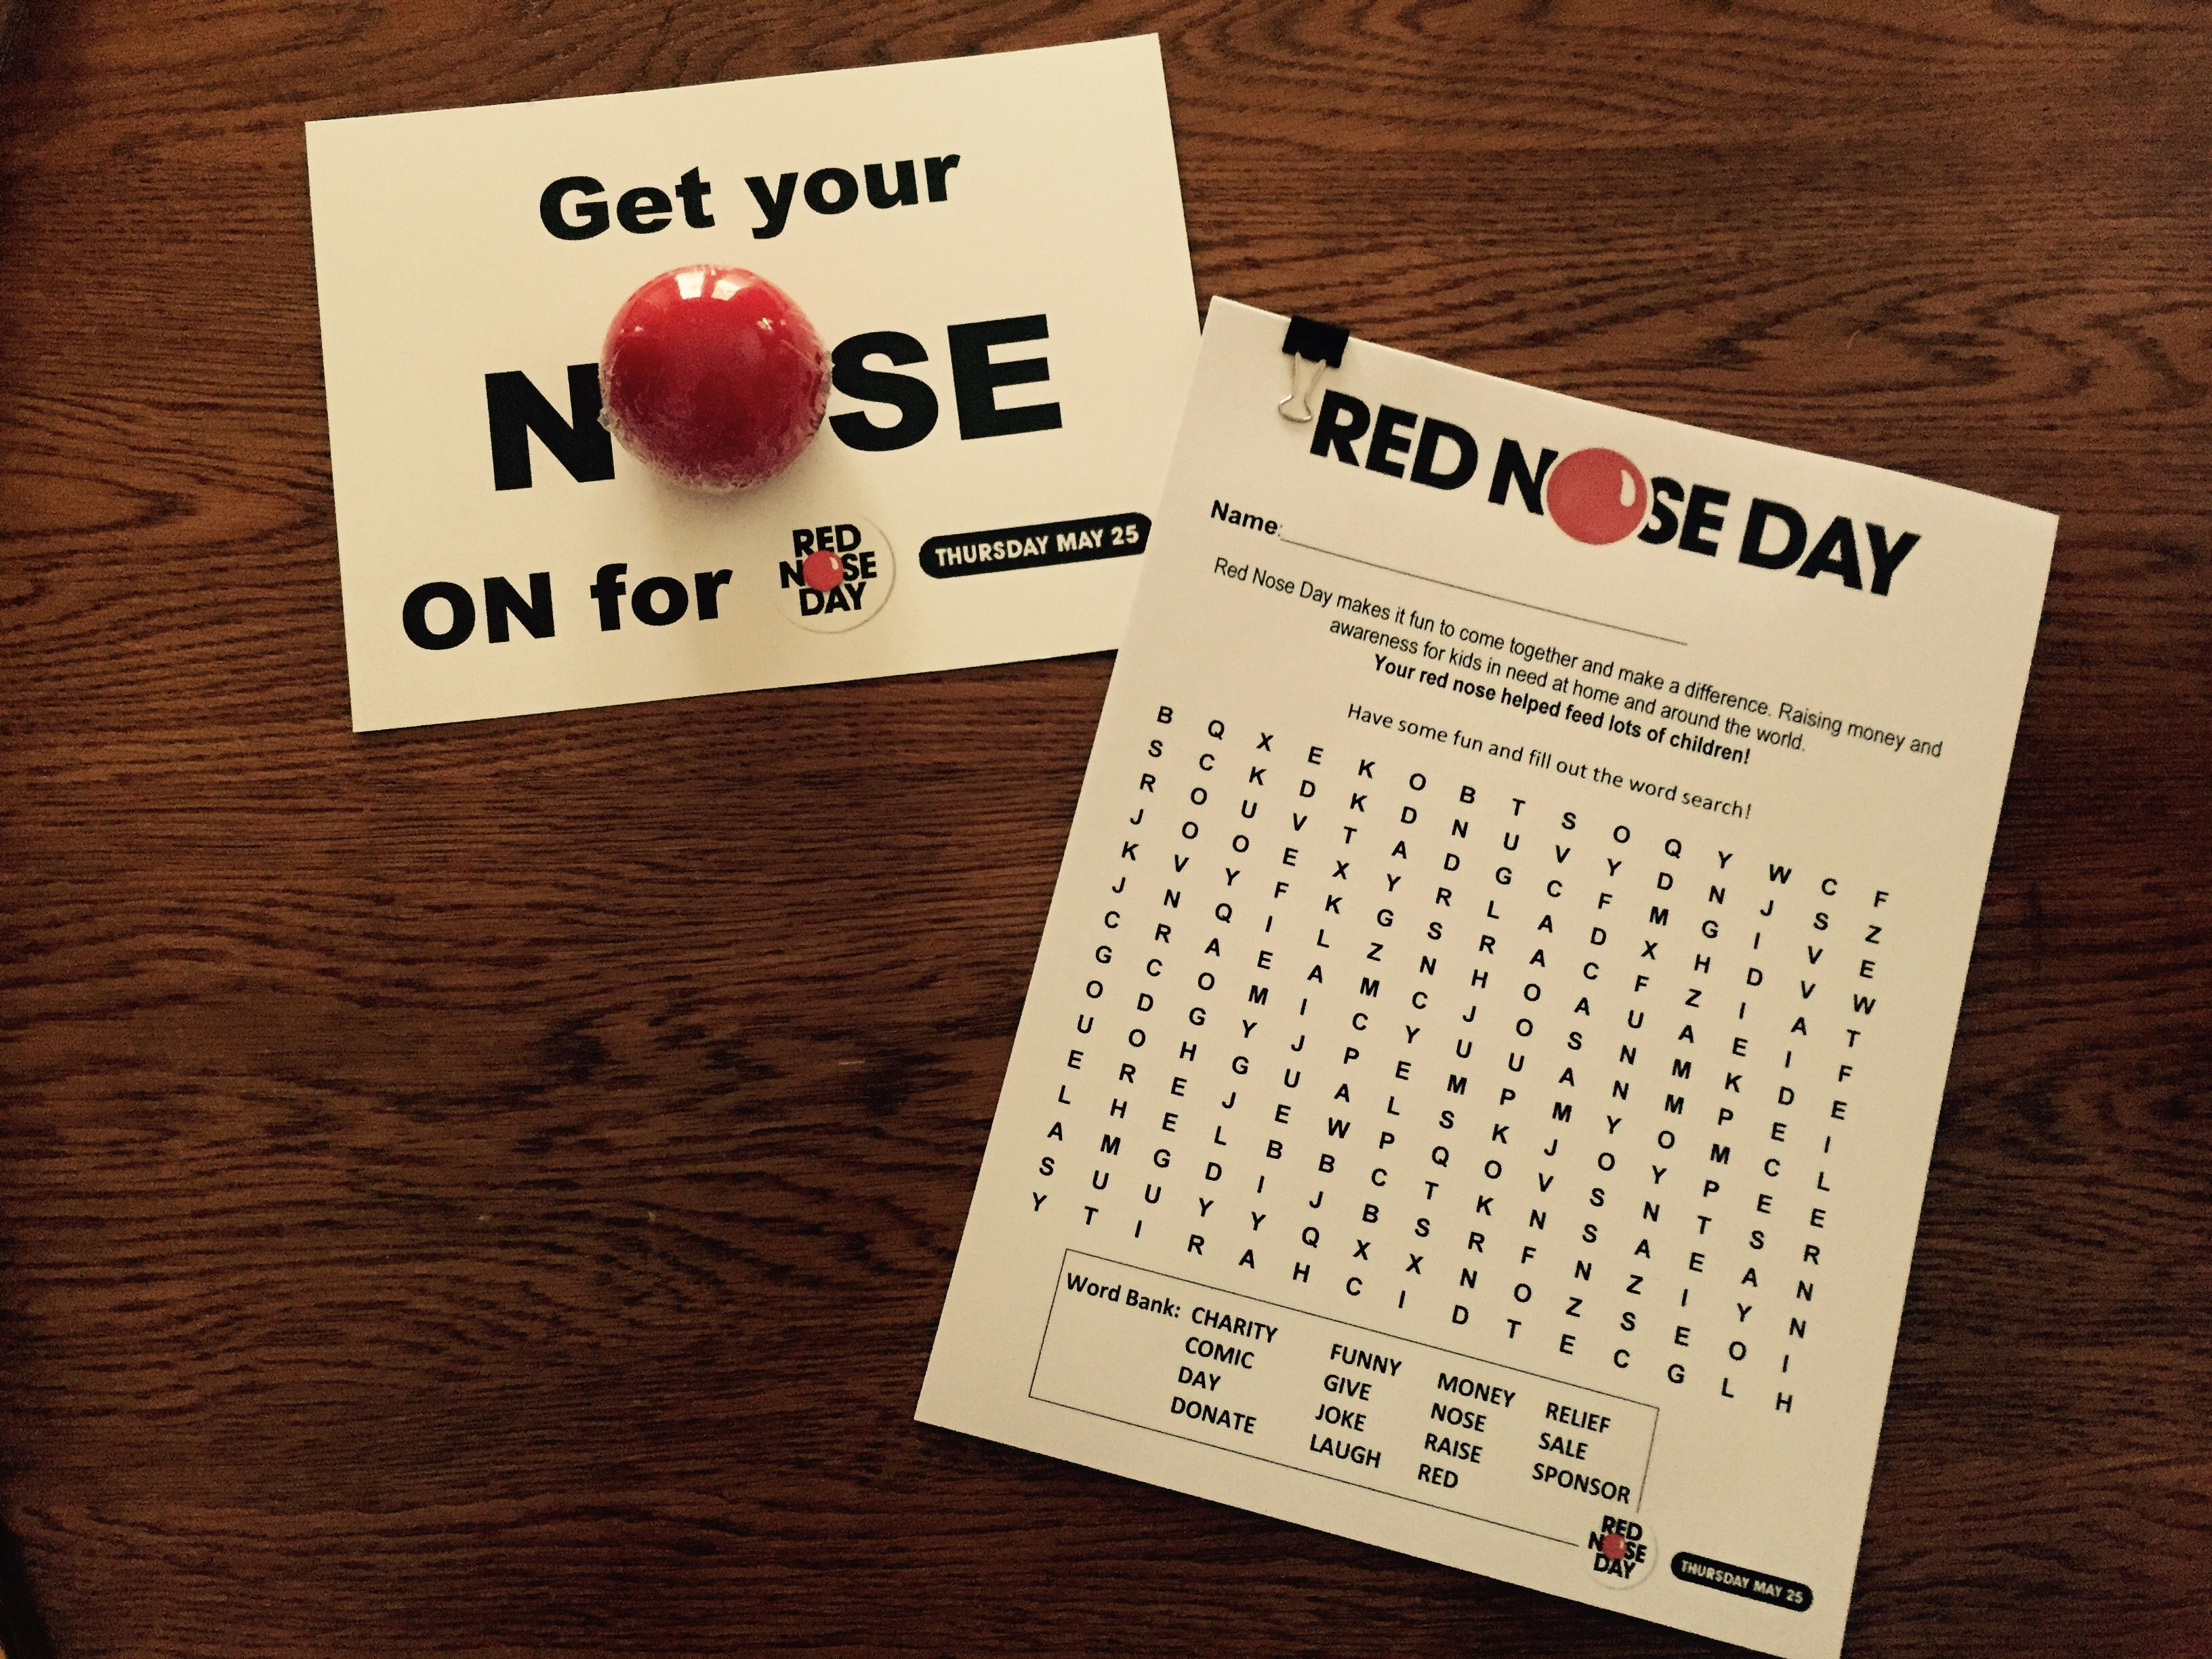 How Much Money From Red Nose Day Goes To Charity